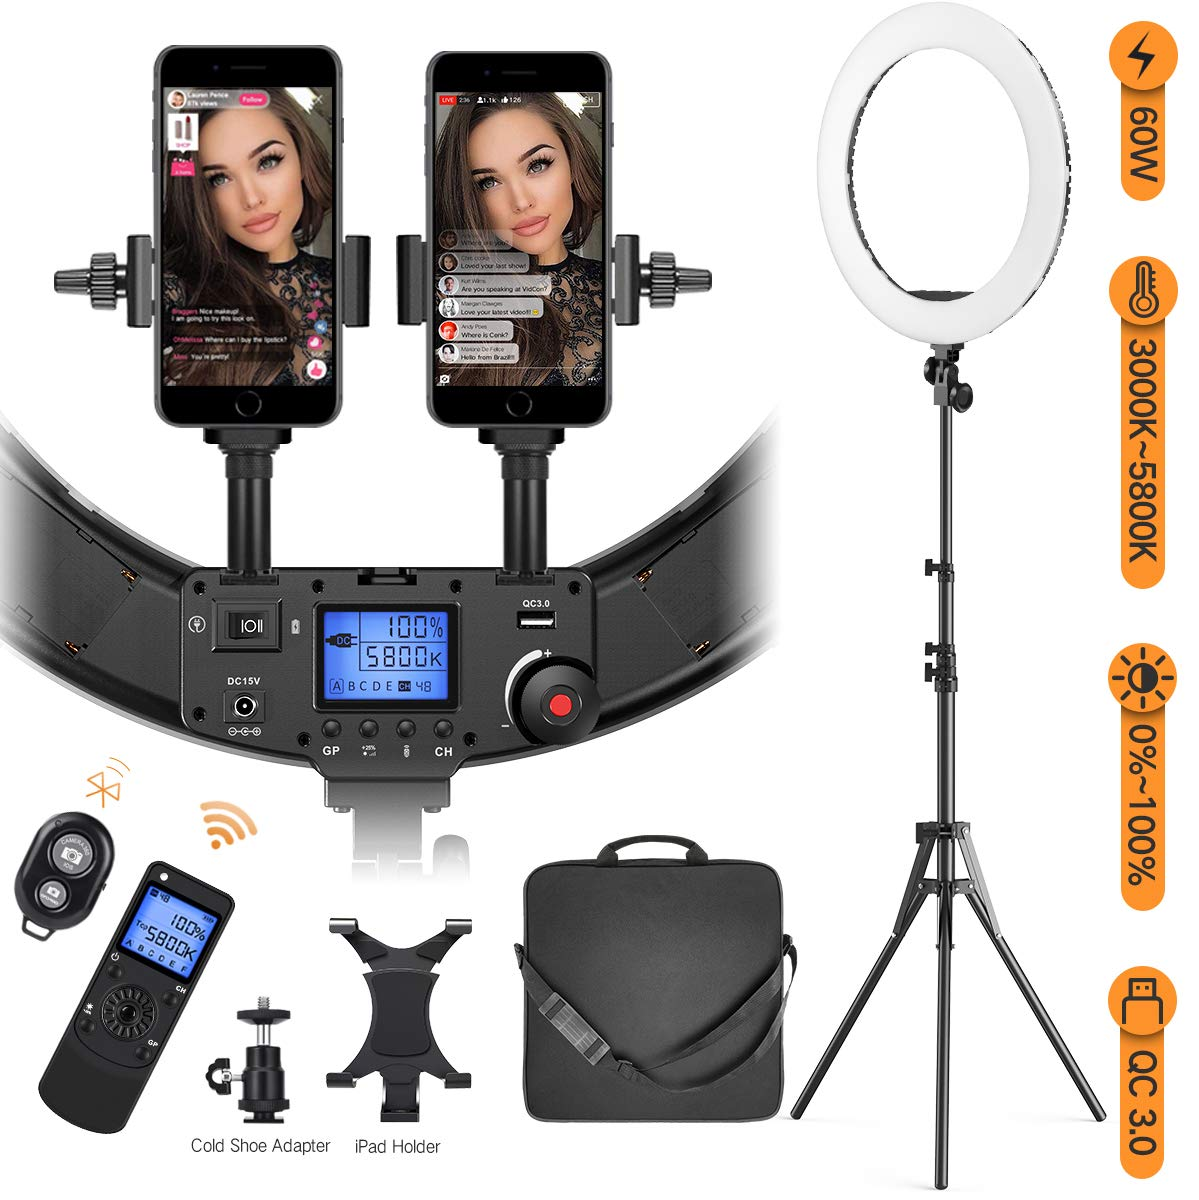 Ring Light with Wireless Remote and iPad Holder, Pixel 19'' Bi-Color Ring Light with Stand,60W 3000-5800K CRI≥97 Light Ring with USB QC 3.0 for Vlogging Portrait Makeup Video Shooting by PIXEL